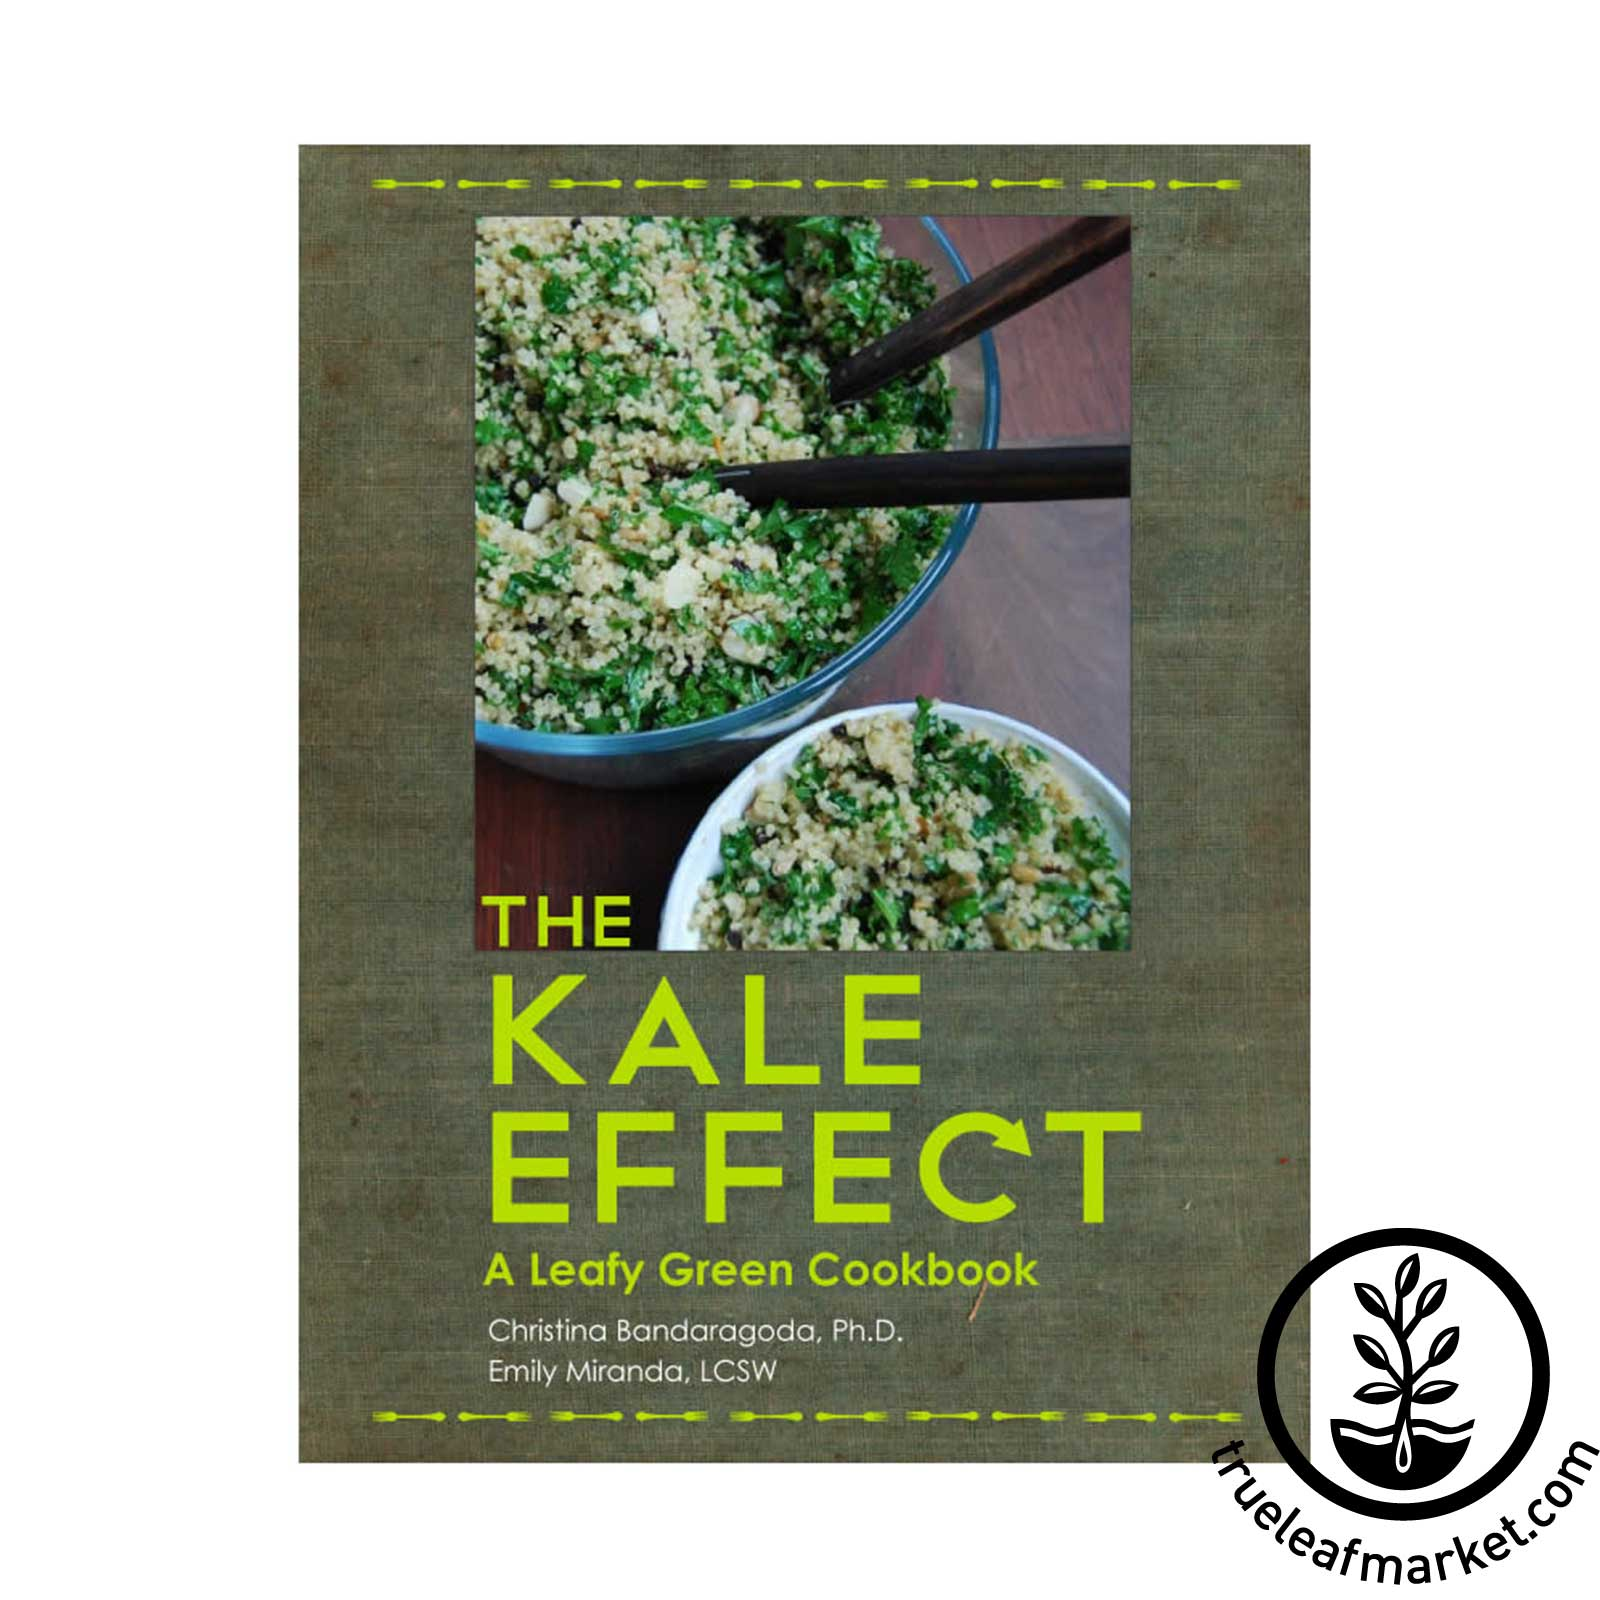 Book: The Kale Effect - A Leafy Green Cookbook